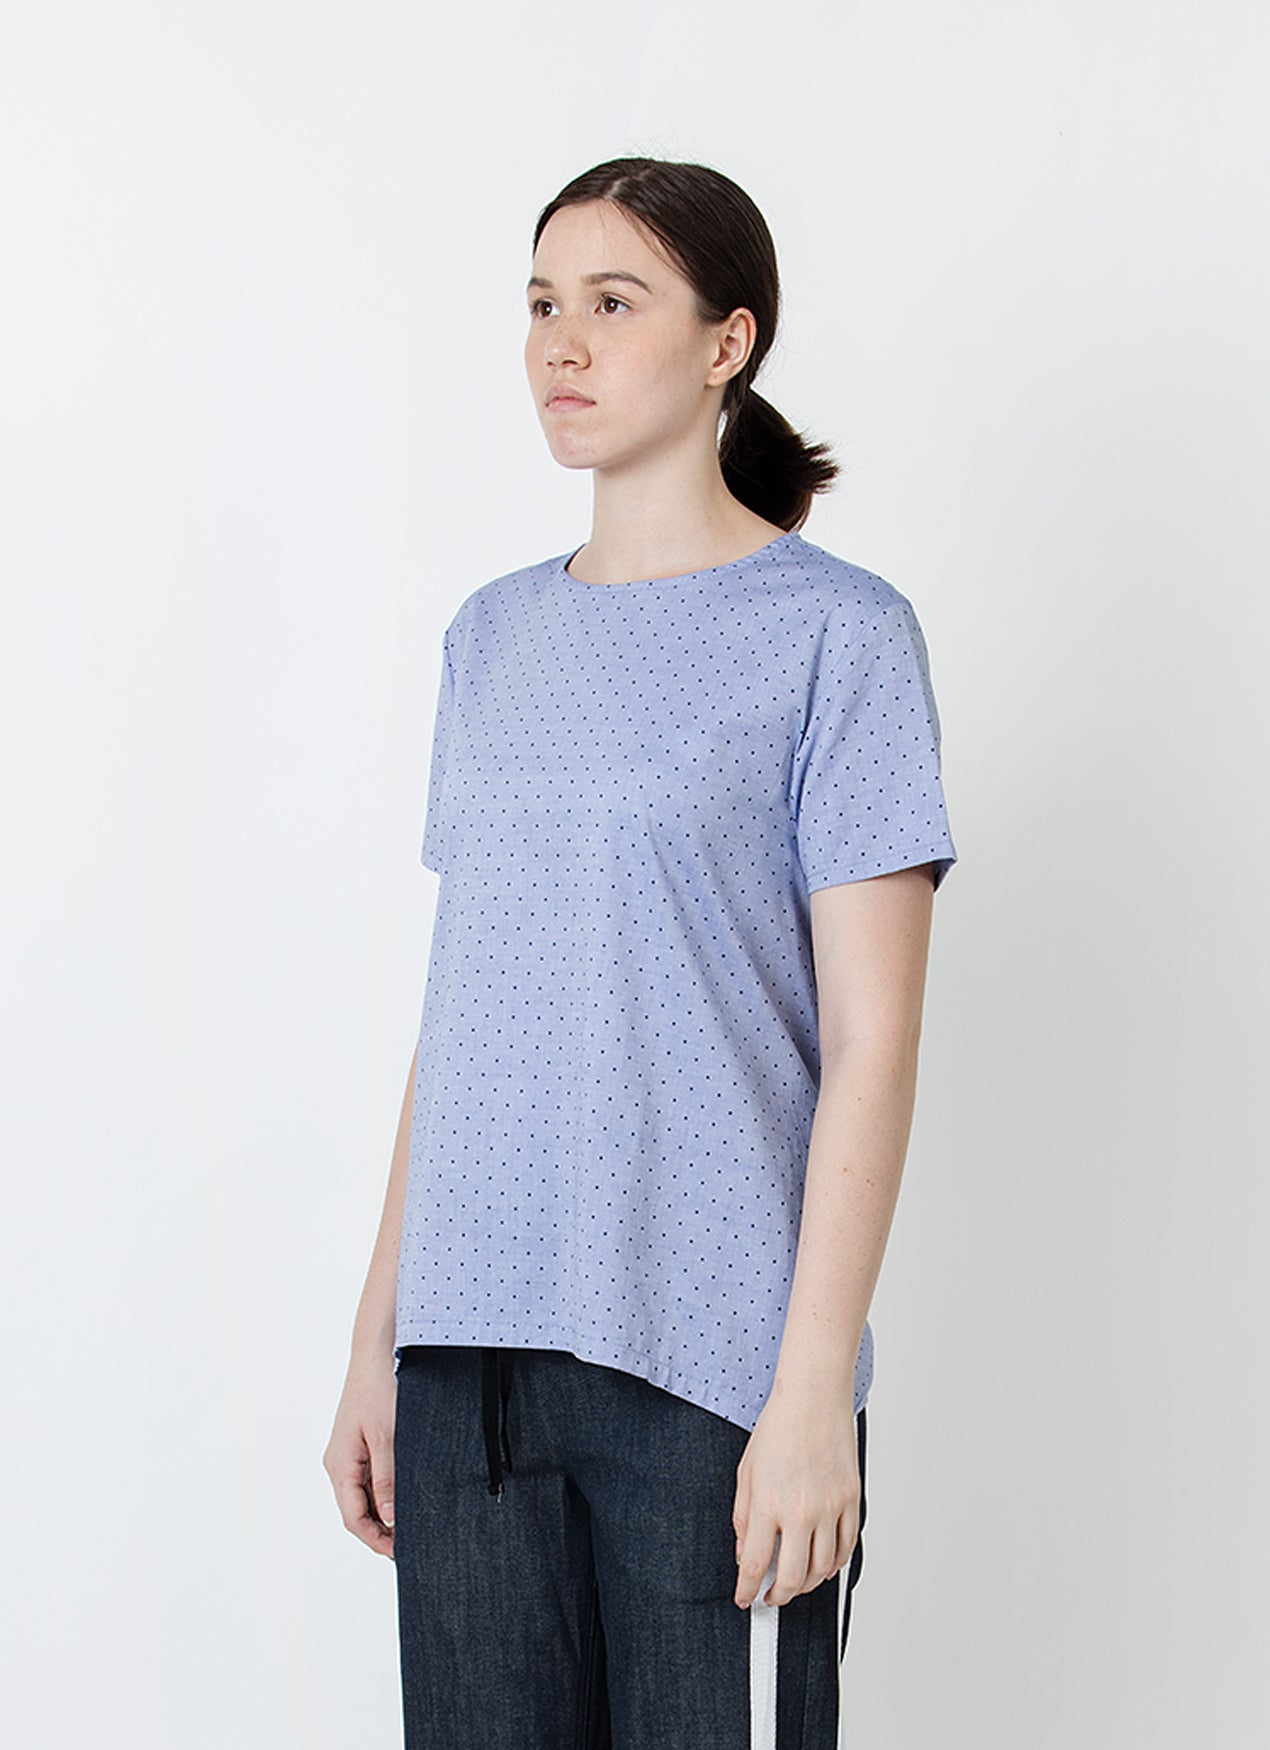 Short Sleeve Apron Top